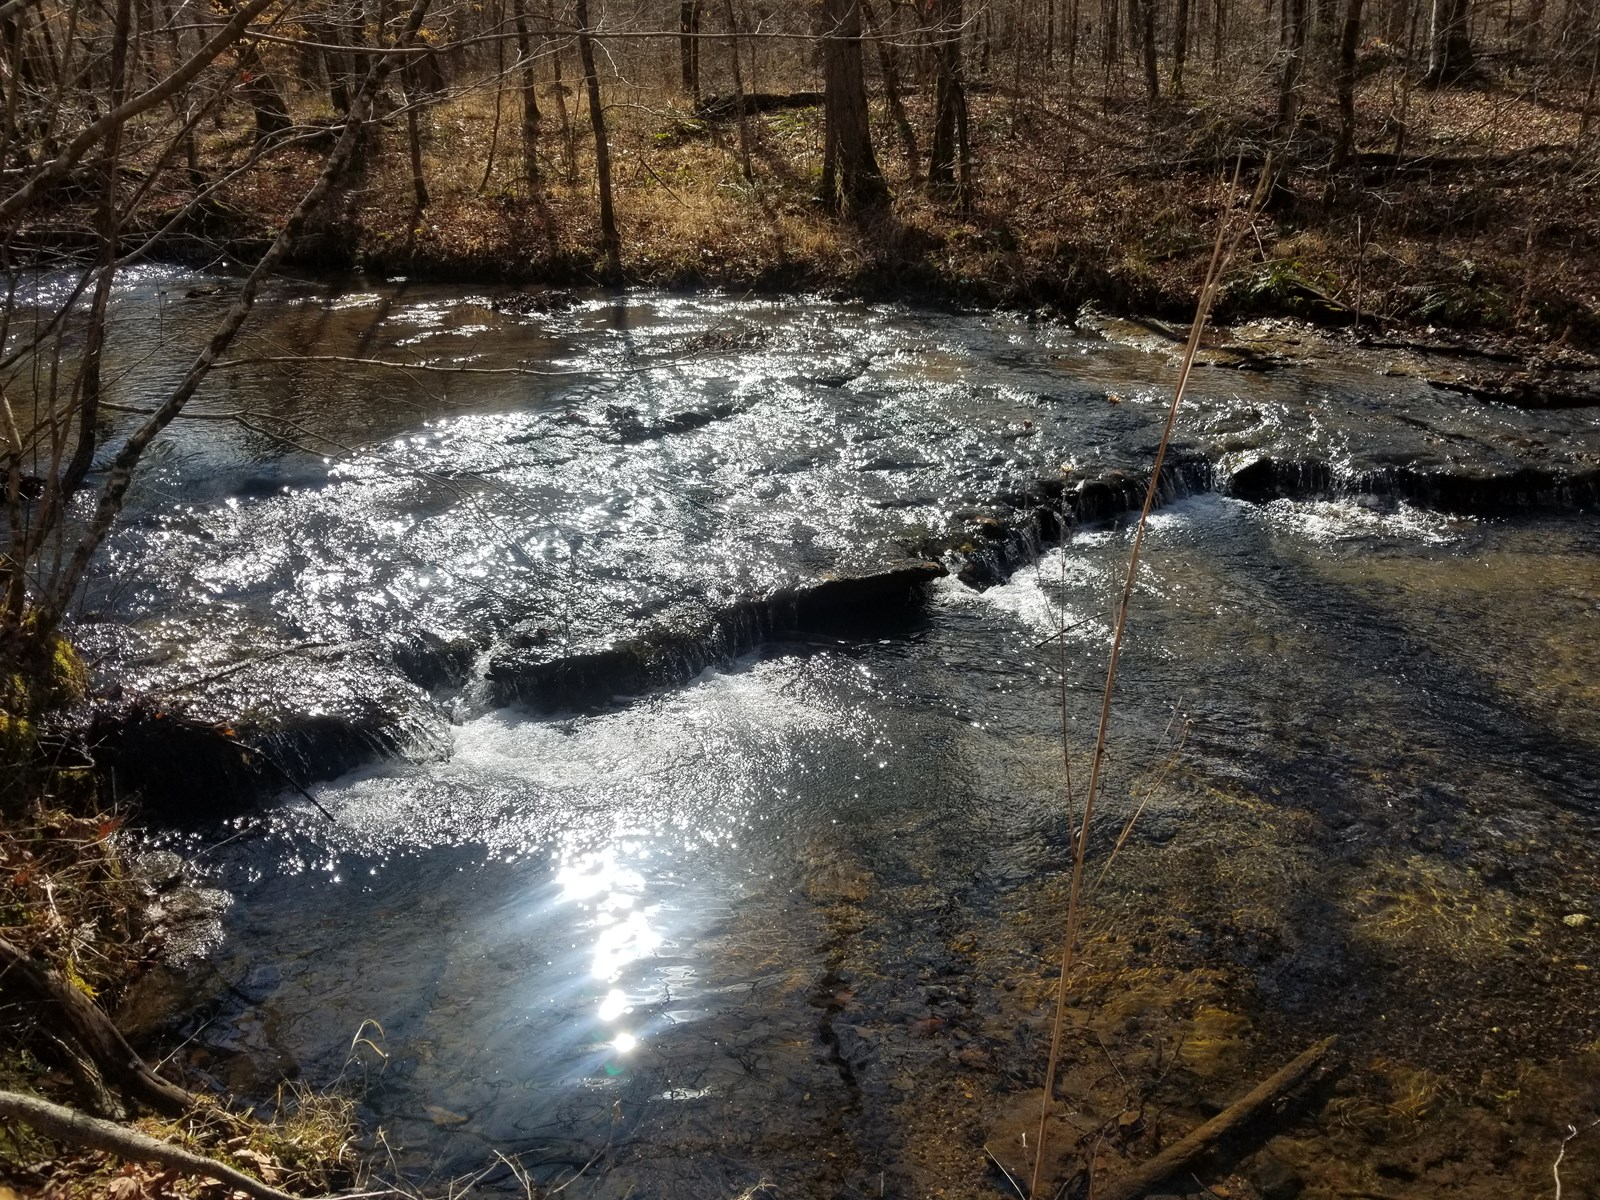 SOLD! 31 ACRE TN WOODS LAND CREEK WATERFALL ELECTRIC